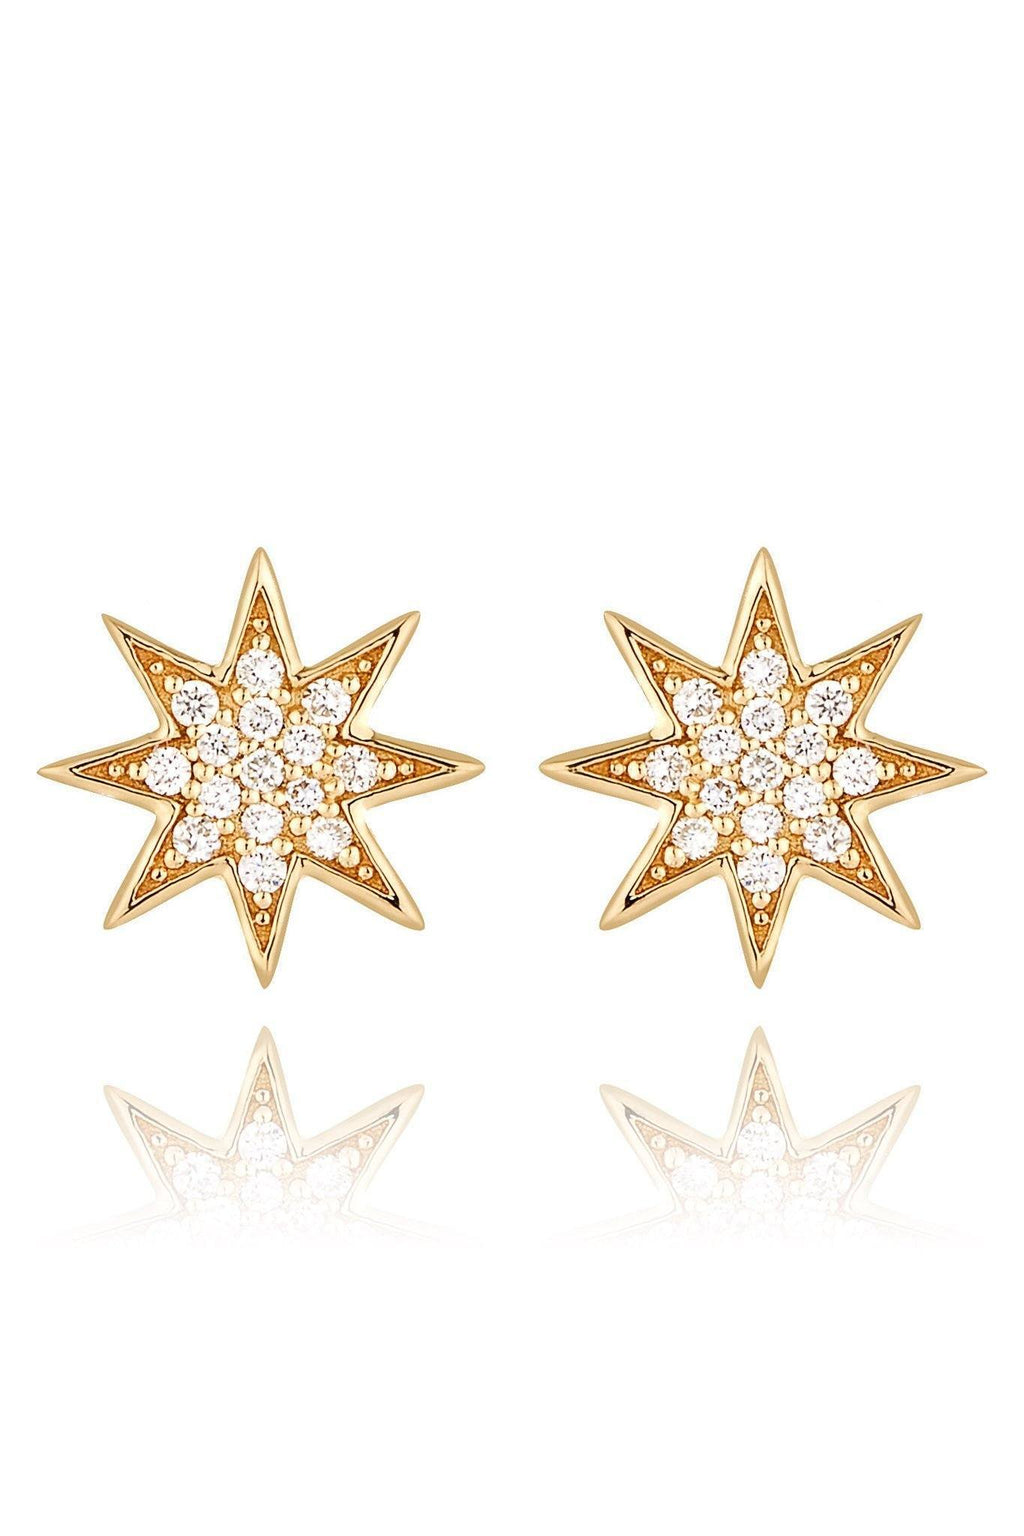 Star Diamond Pavé Stud Earrings Earrings Lark and Berry Yellow Gold